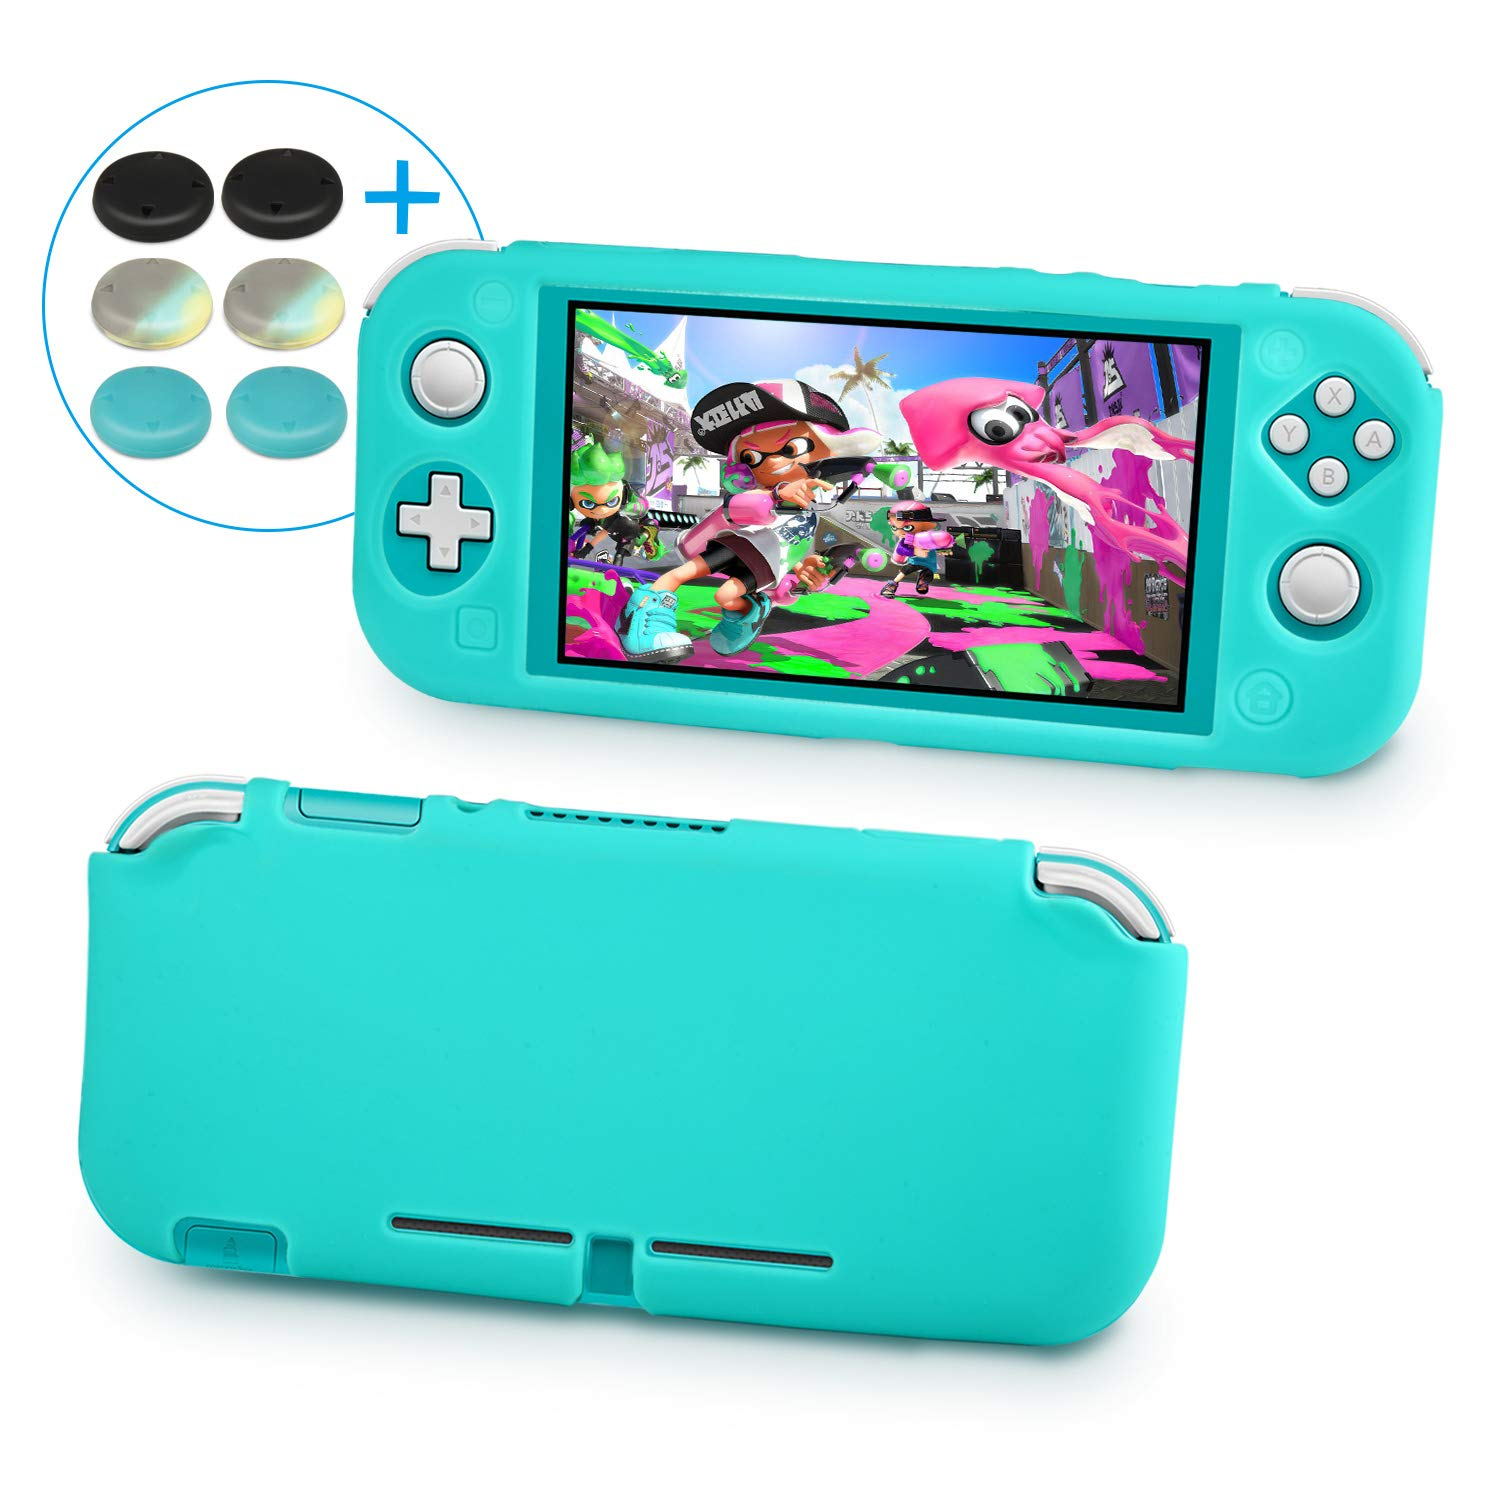 Keten Silicone Case for Nintendo Switch Lite, Anti-Slip Silicone Case Cover for Nintendo Switch Lite (2019) with 6 Thumb Grips Caps, Protective Case Lightweight Design for Comfort Feeling - Turquoise